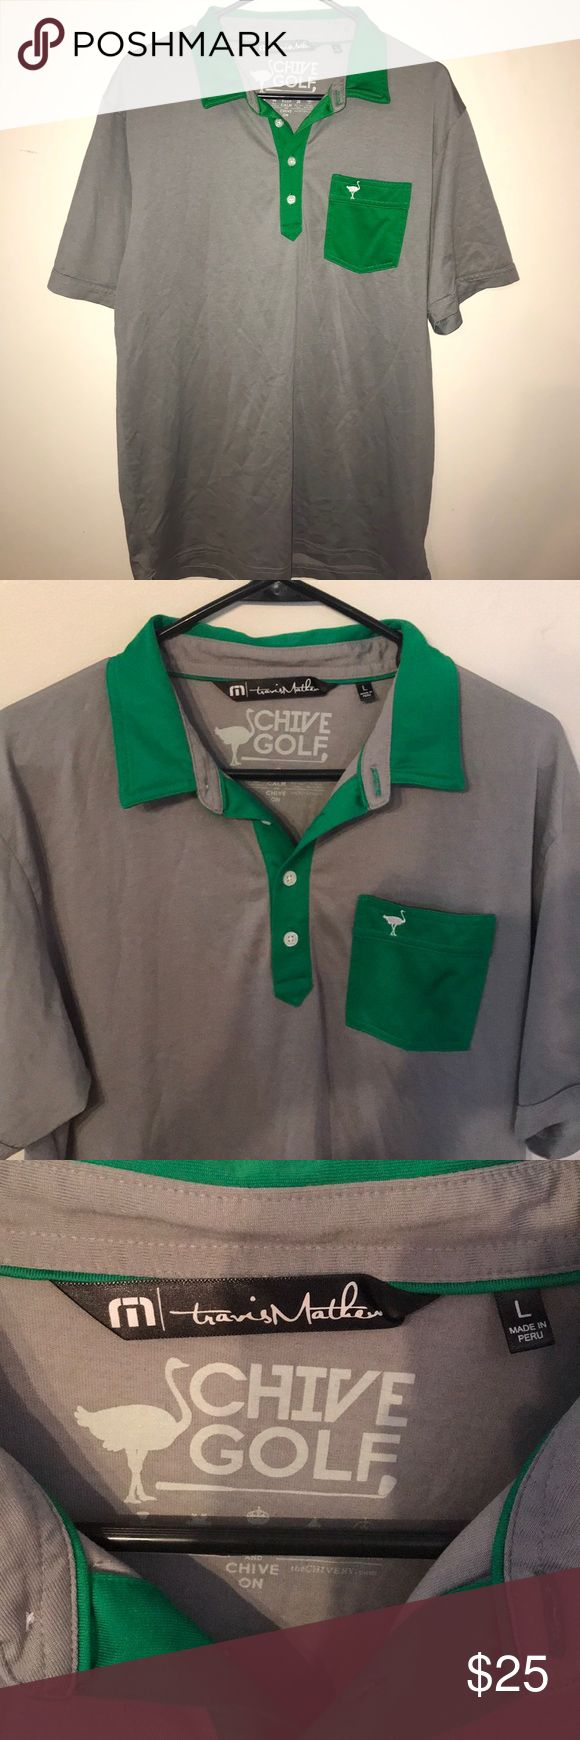 THE CHIVE🍀 Men's Golf Travis Mathew Polo Shirt Awesome CHIVE shirt!!! Size Large. Like new. Chive logo on pocket, sleeve, and back of shirt.   KEEP CALM AND CHIVE ON! Travis Mathew Shirts Polos